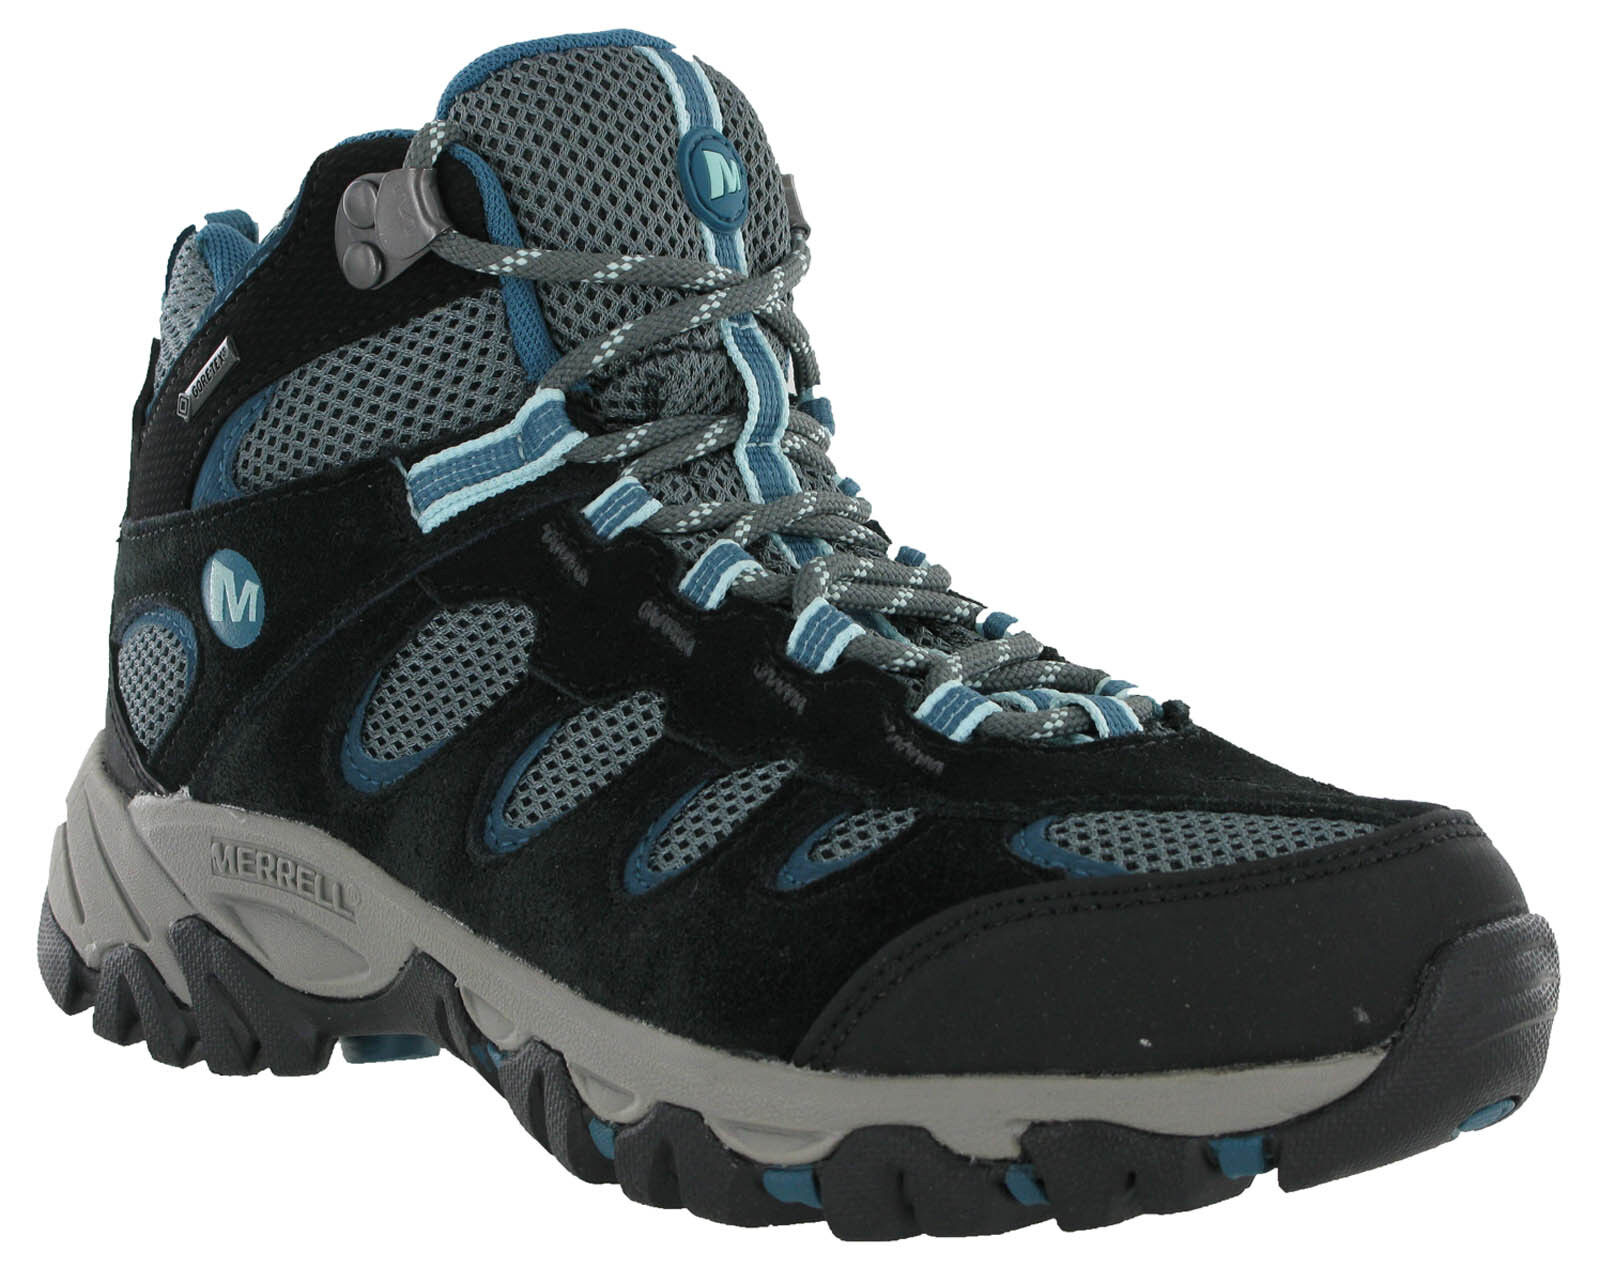 Merrell Ridgepass Mid Gore-Tex Leather Mesh Walking Hiking Trail Womens Boots